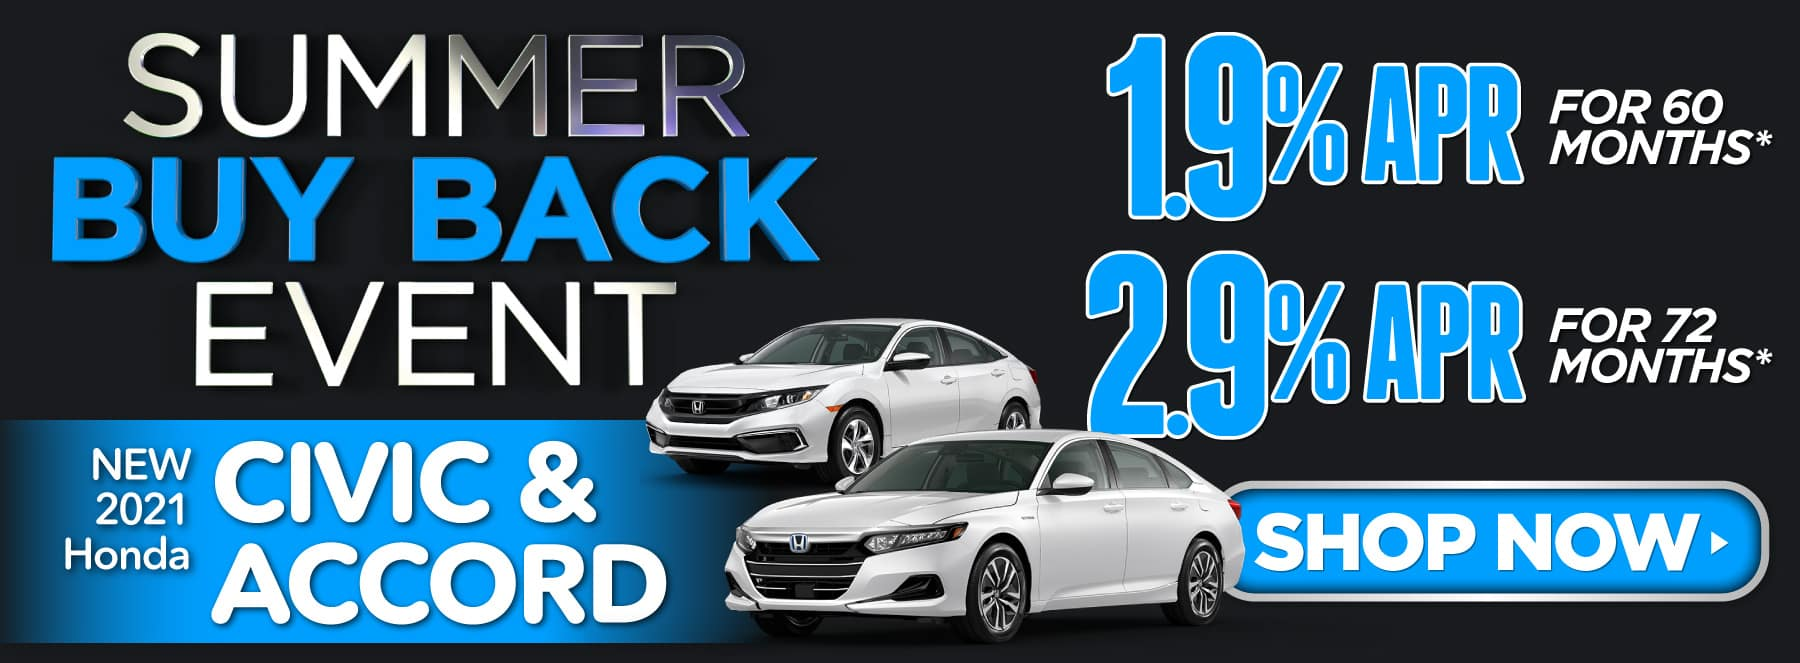 New 2021 Honda Civic and Accord - 1.9% APR for 60 months or 2.9% APR for 72 months - Shop Now